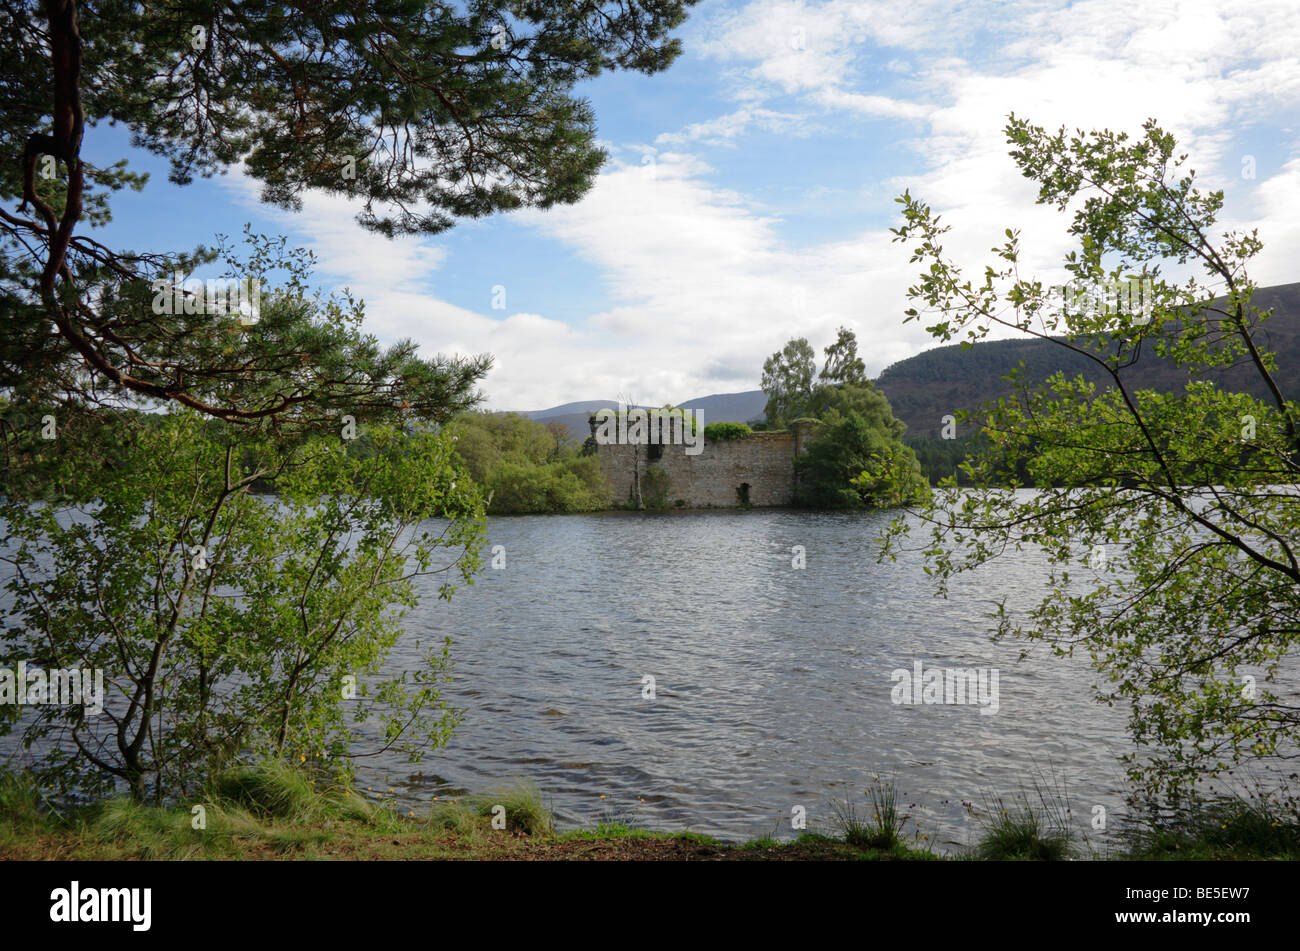 An island with ruined castle in Loch an Eilein near Aviemore, Inverness-shire, Scotland, United Kingdom. - Stock Image